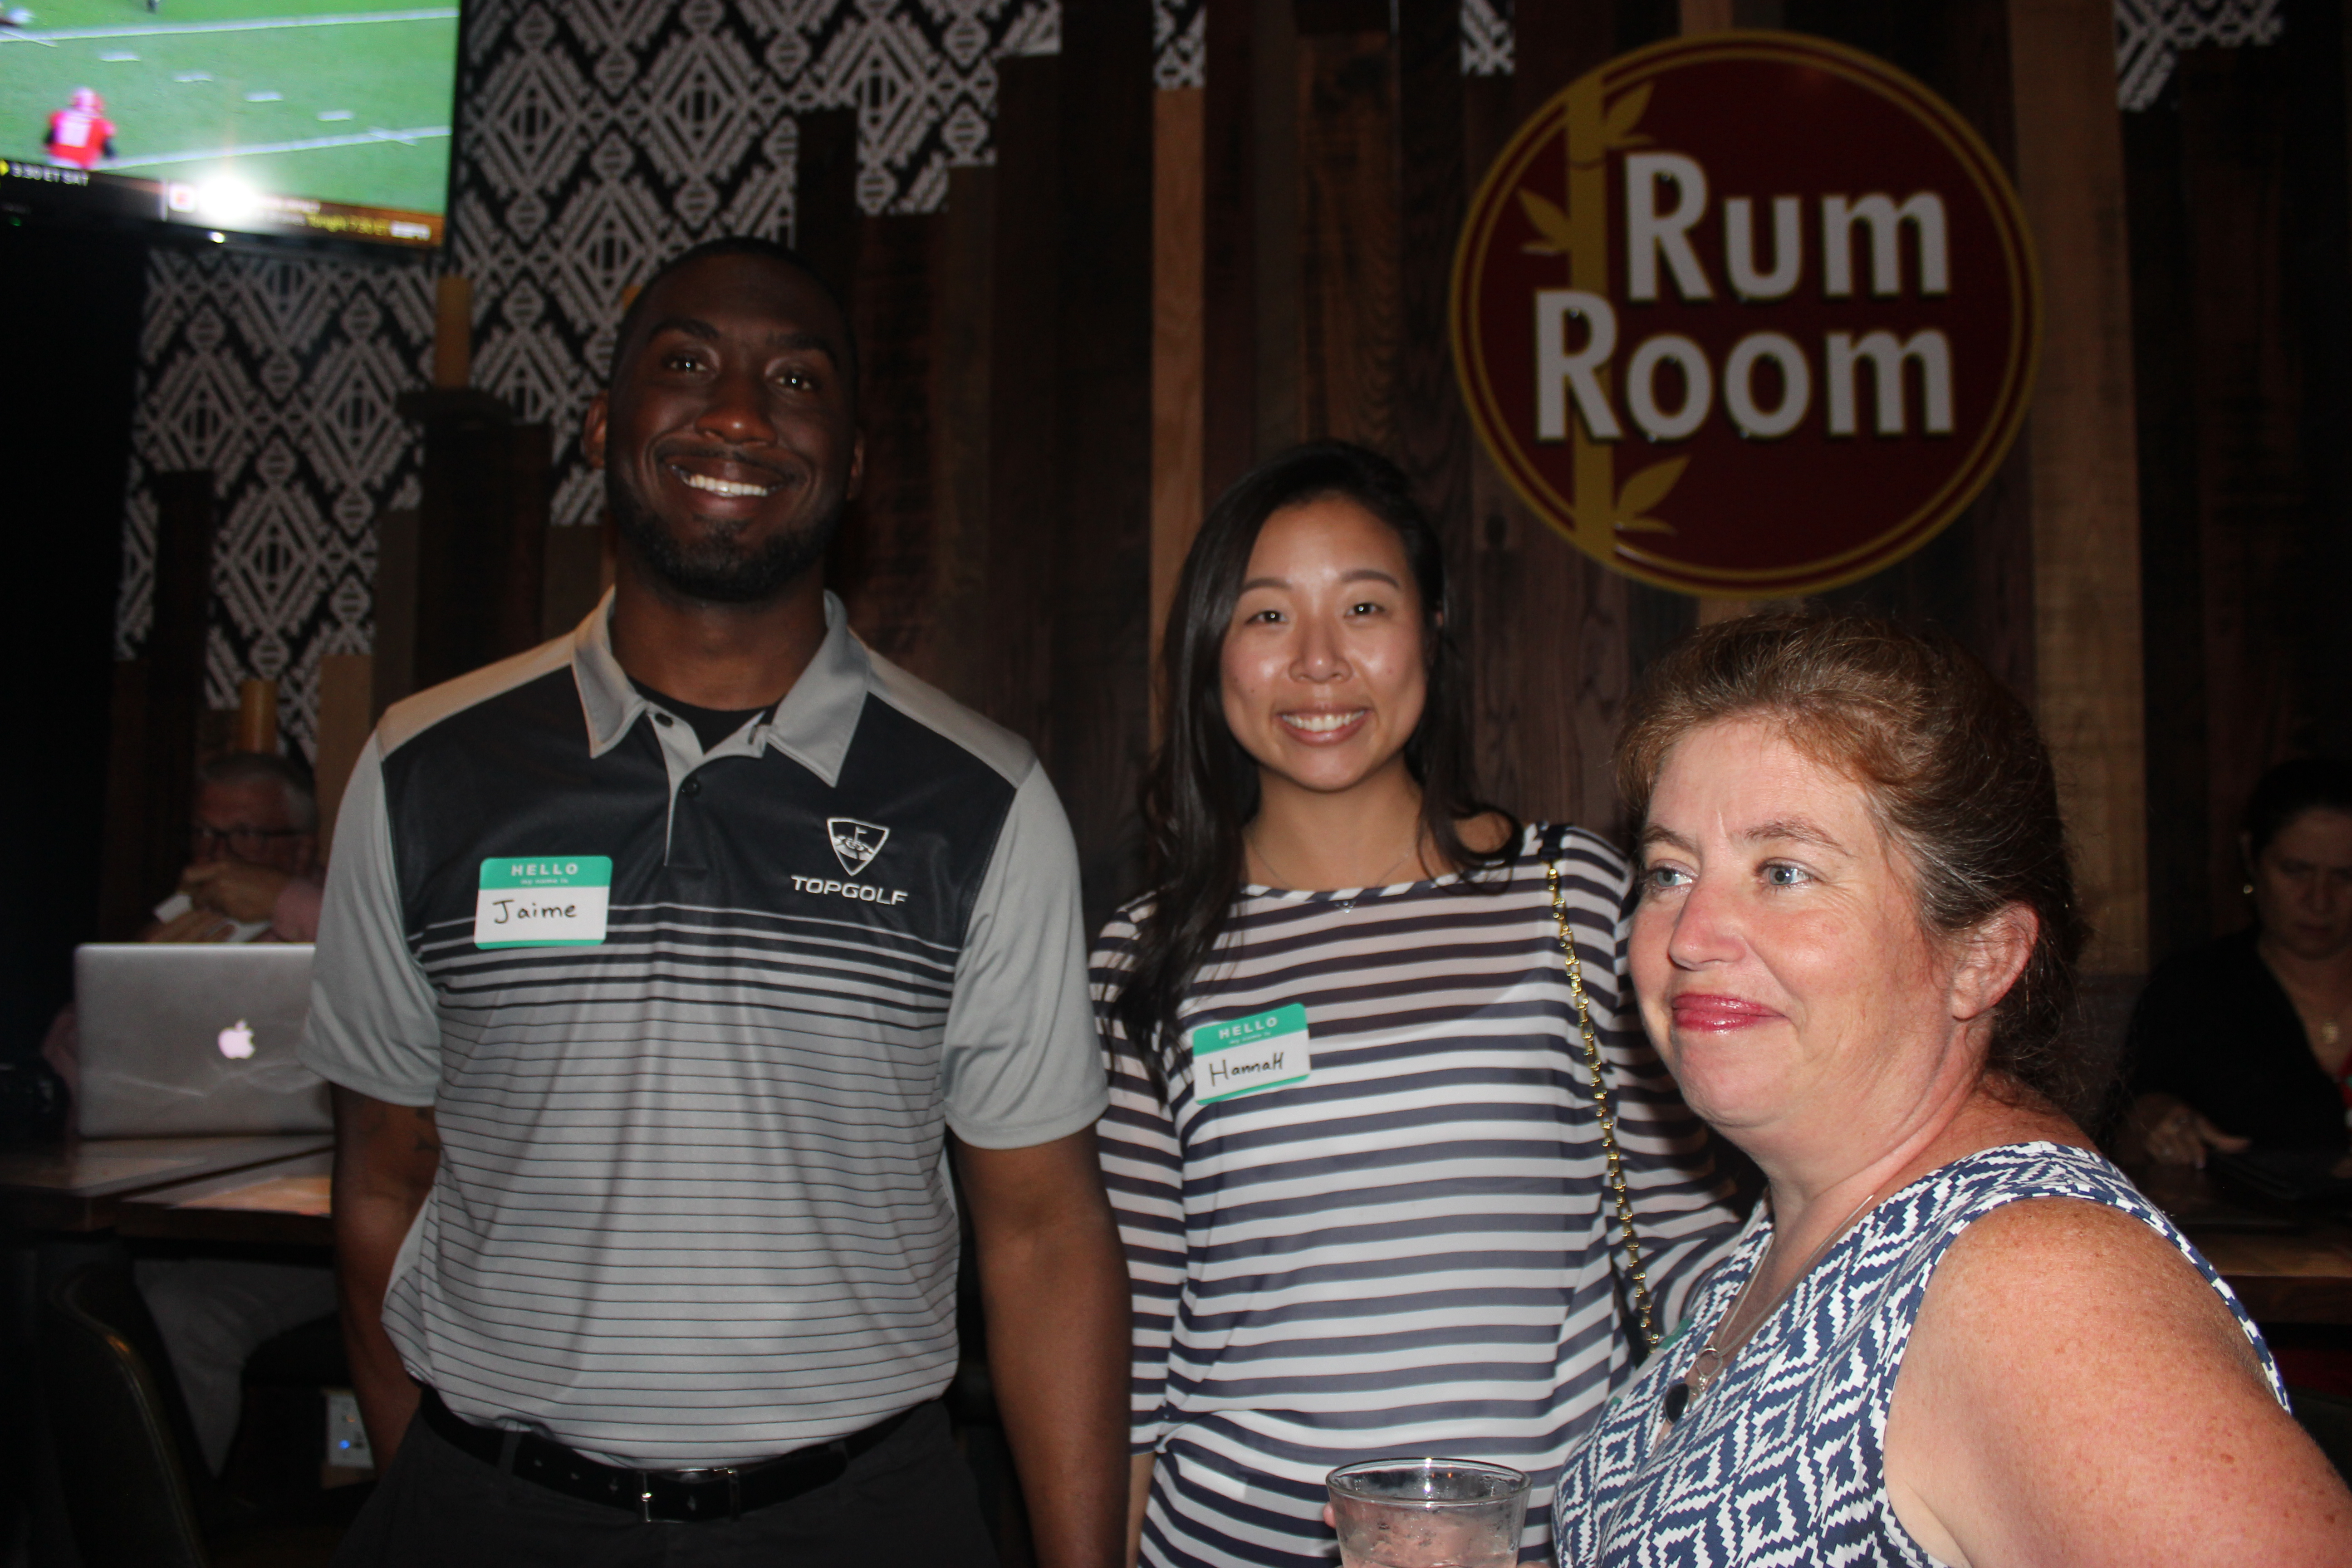 Photo taken in King's Bowl Business Networking event, Top Golf Trustee member.